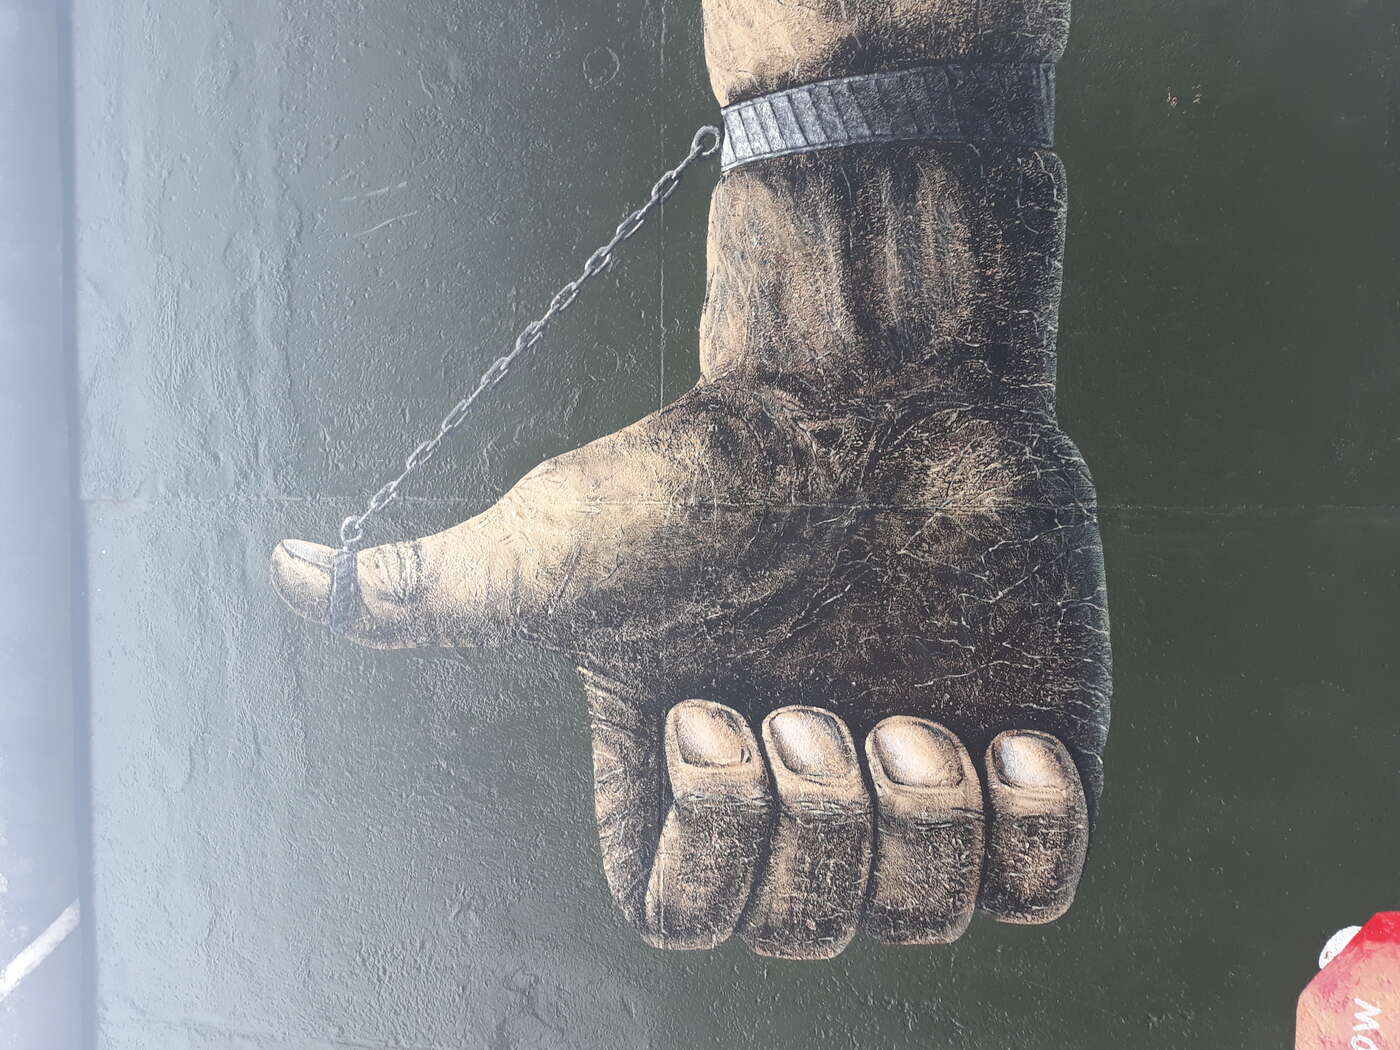 An image taken of streetart at the Berlin Wall.  The art portrays a forced thumbs up.